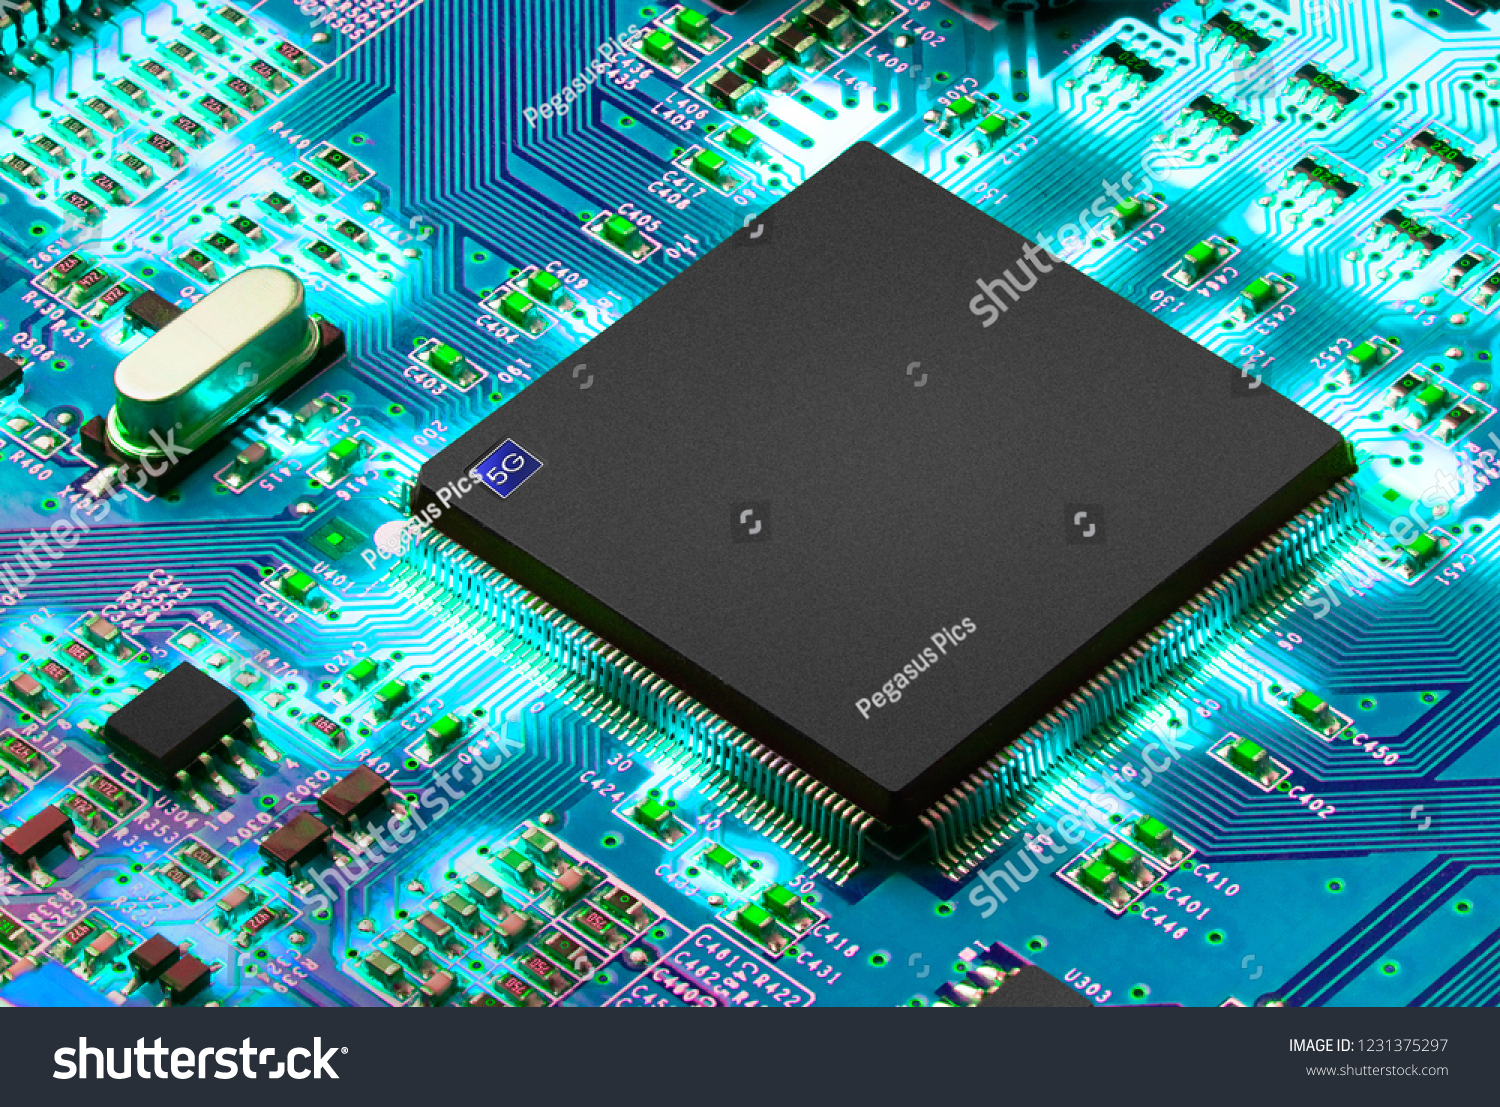 5 G Mobile Chip On Computer Board Stock Photo Edit Now 1231375297 Circuit Of A Cell Phone Royalty Free Image 5g Background Space For Text